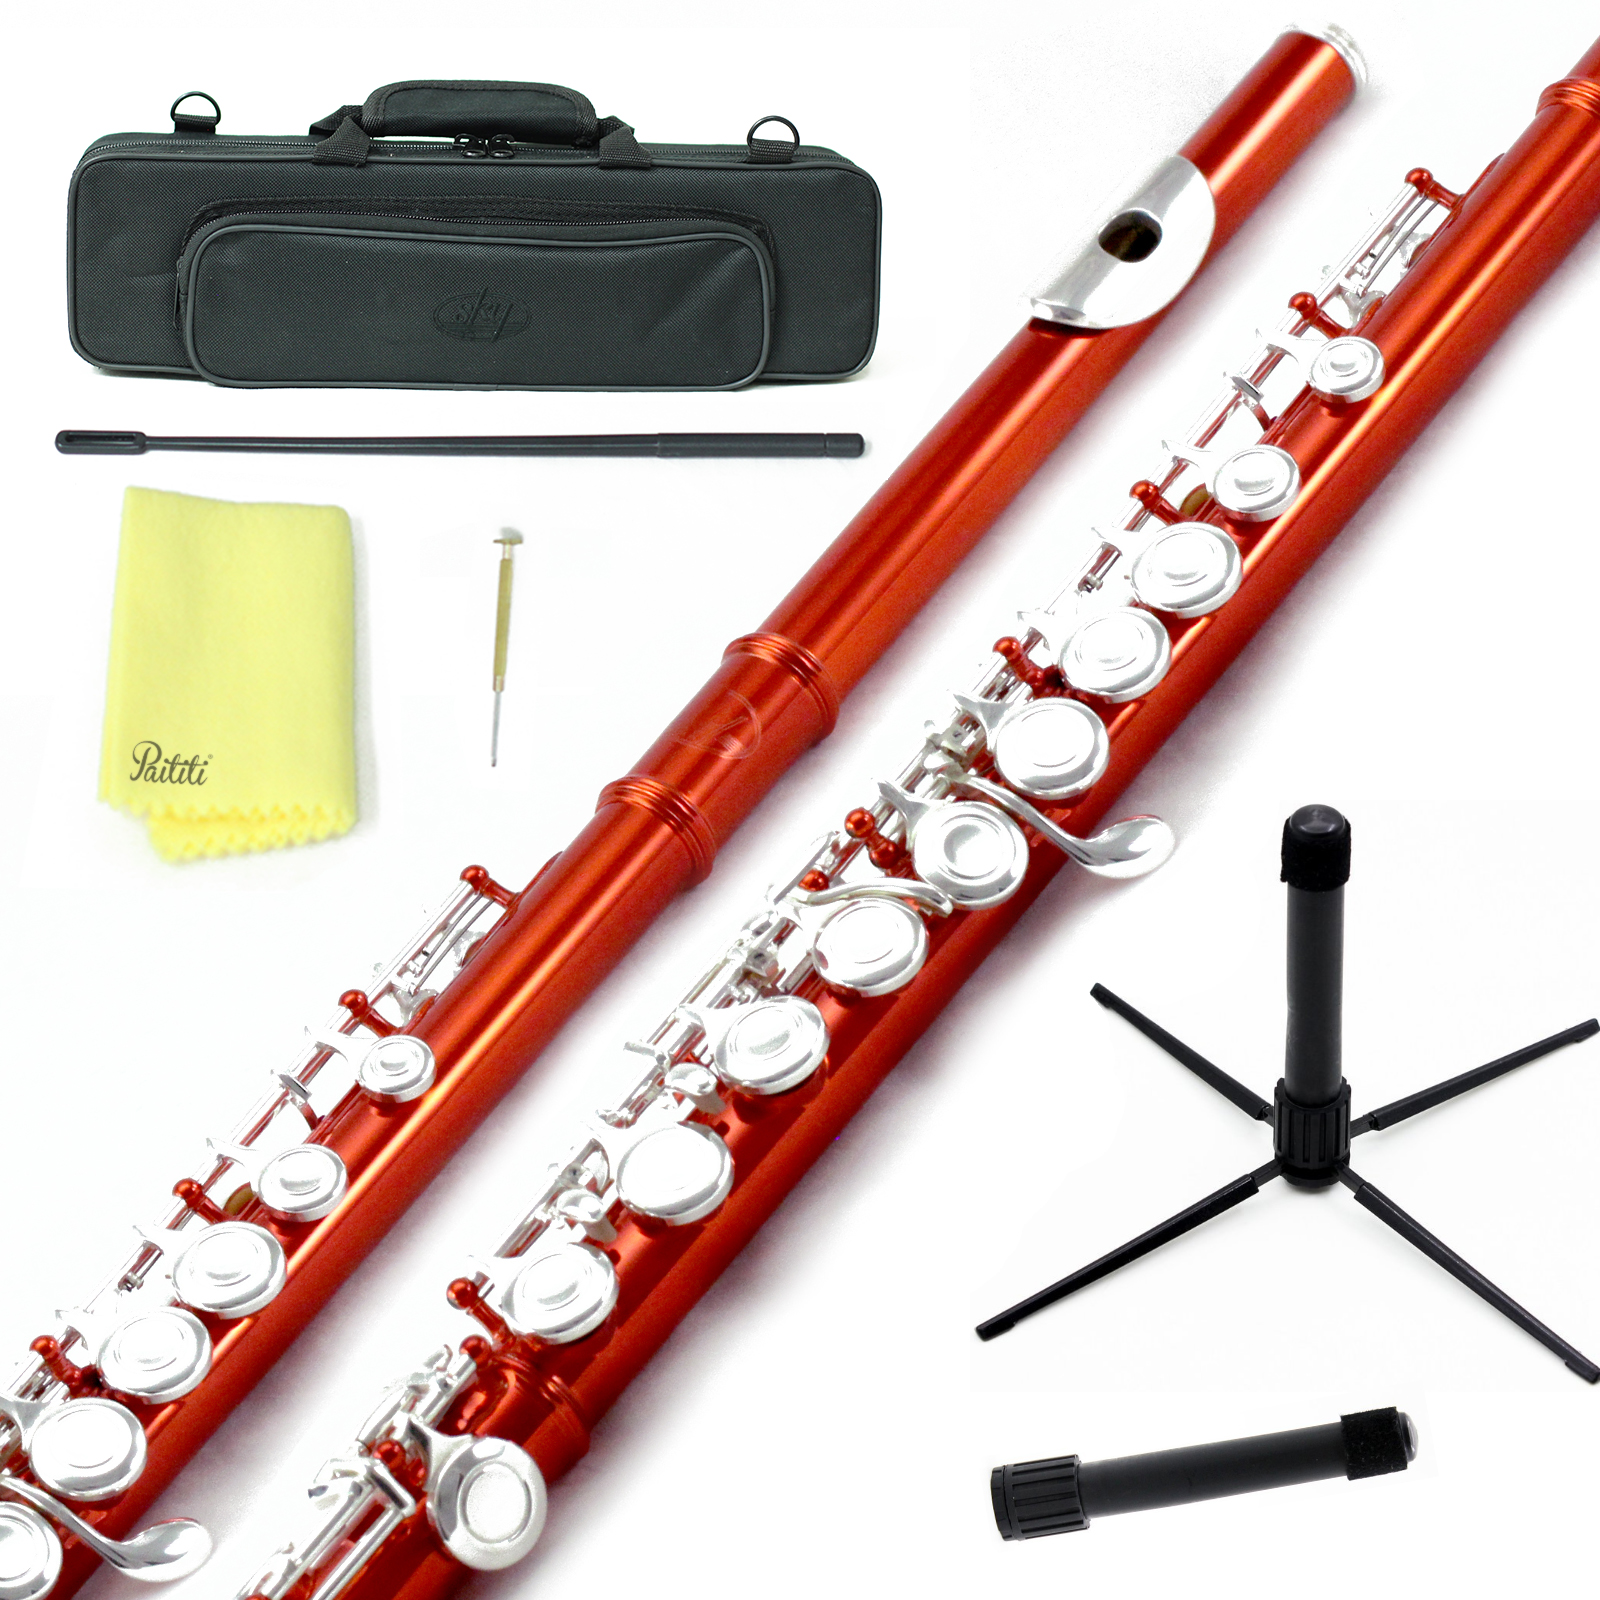 Sky Closed Hole C Flute with Lightweight Case, Cleaning Rod, Cloth, Joint Grease and Screw Driver - Wine Red Silver